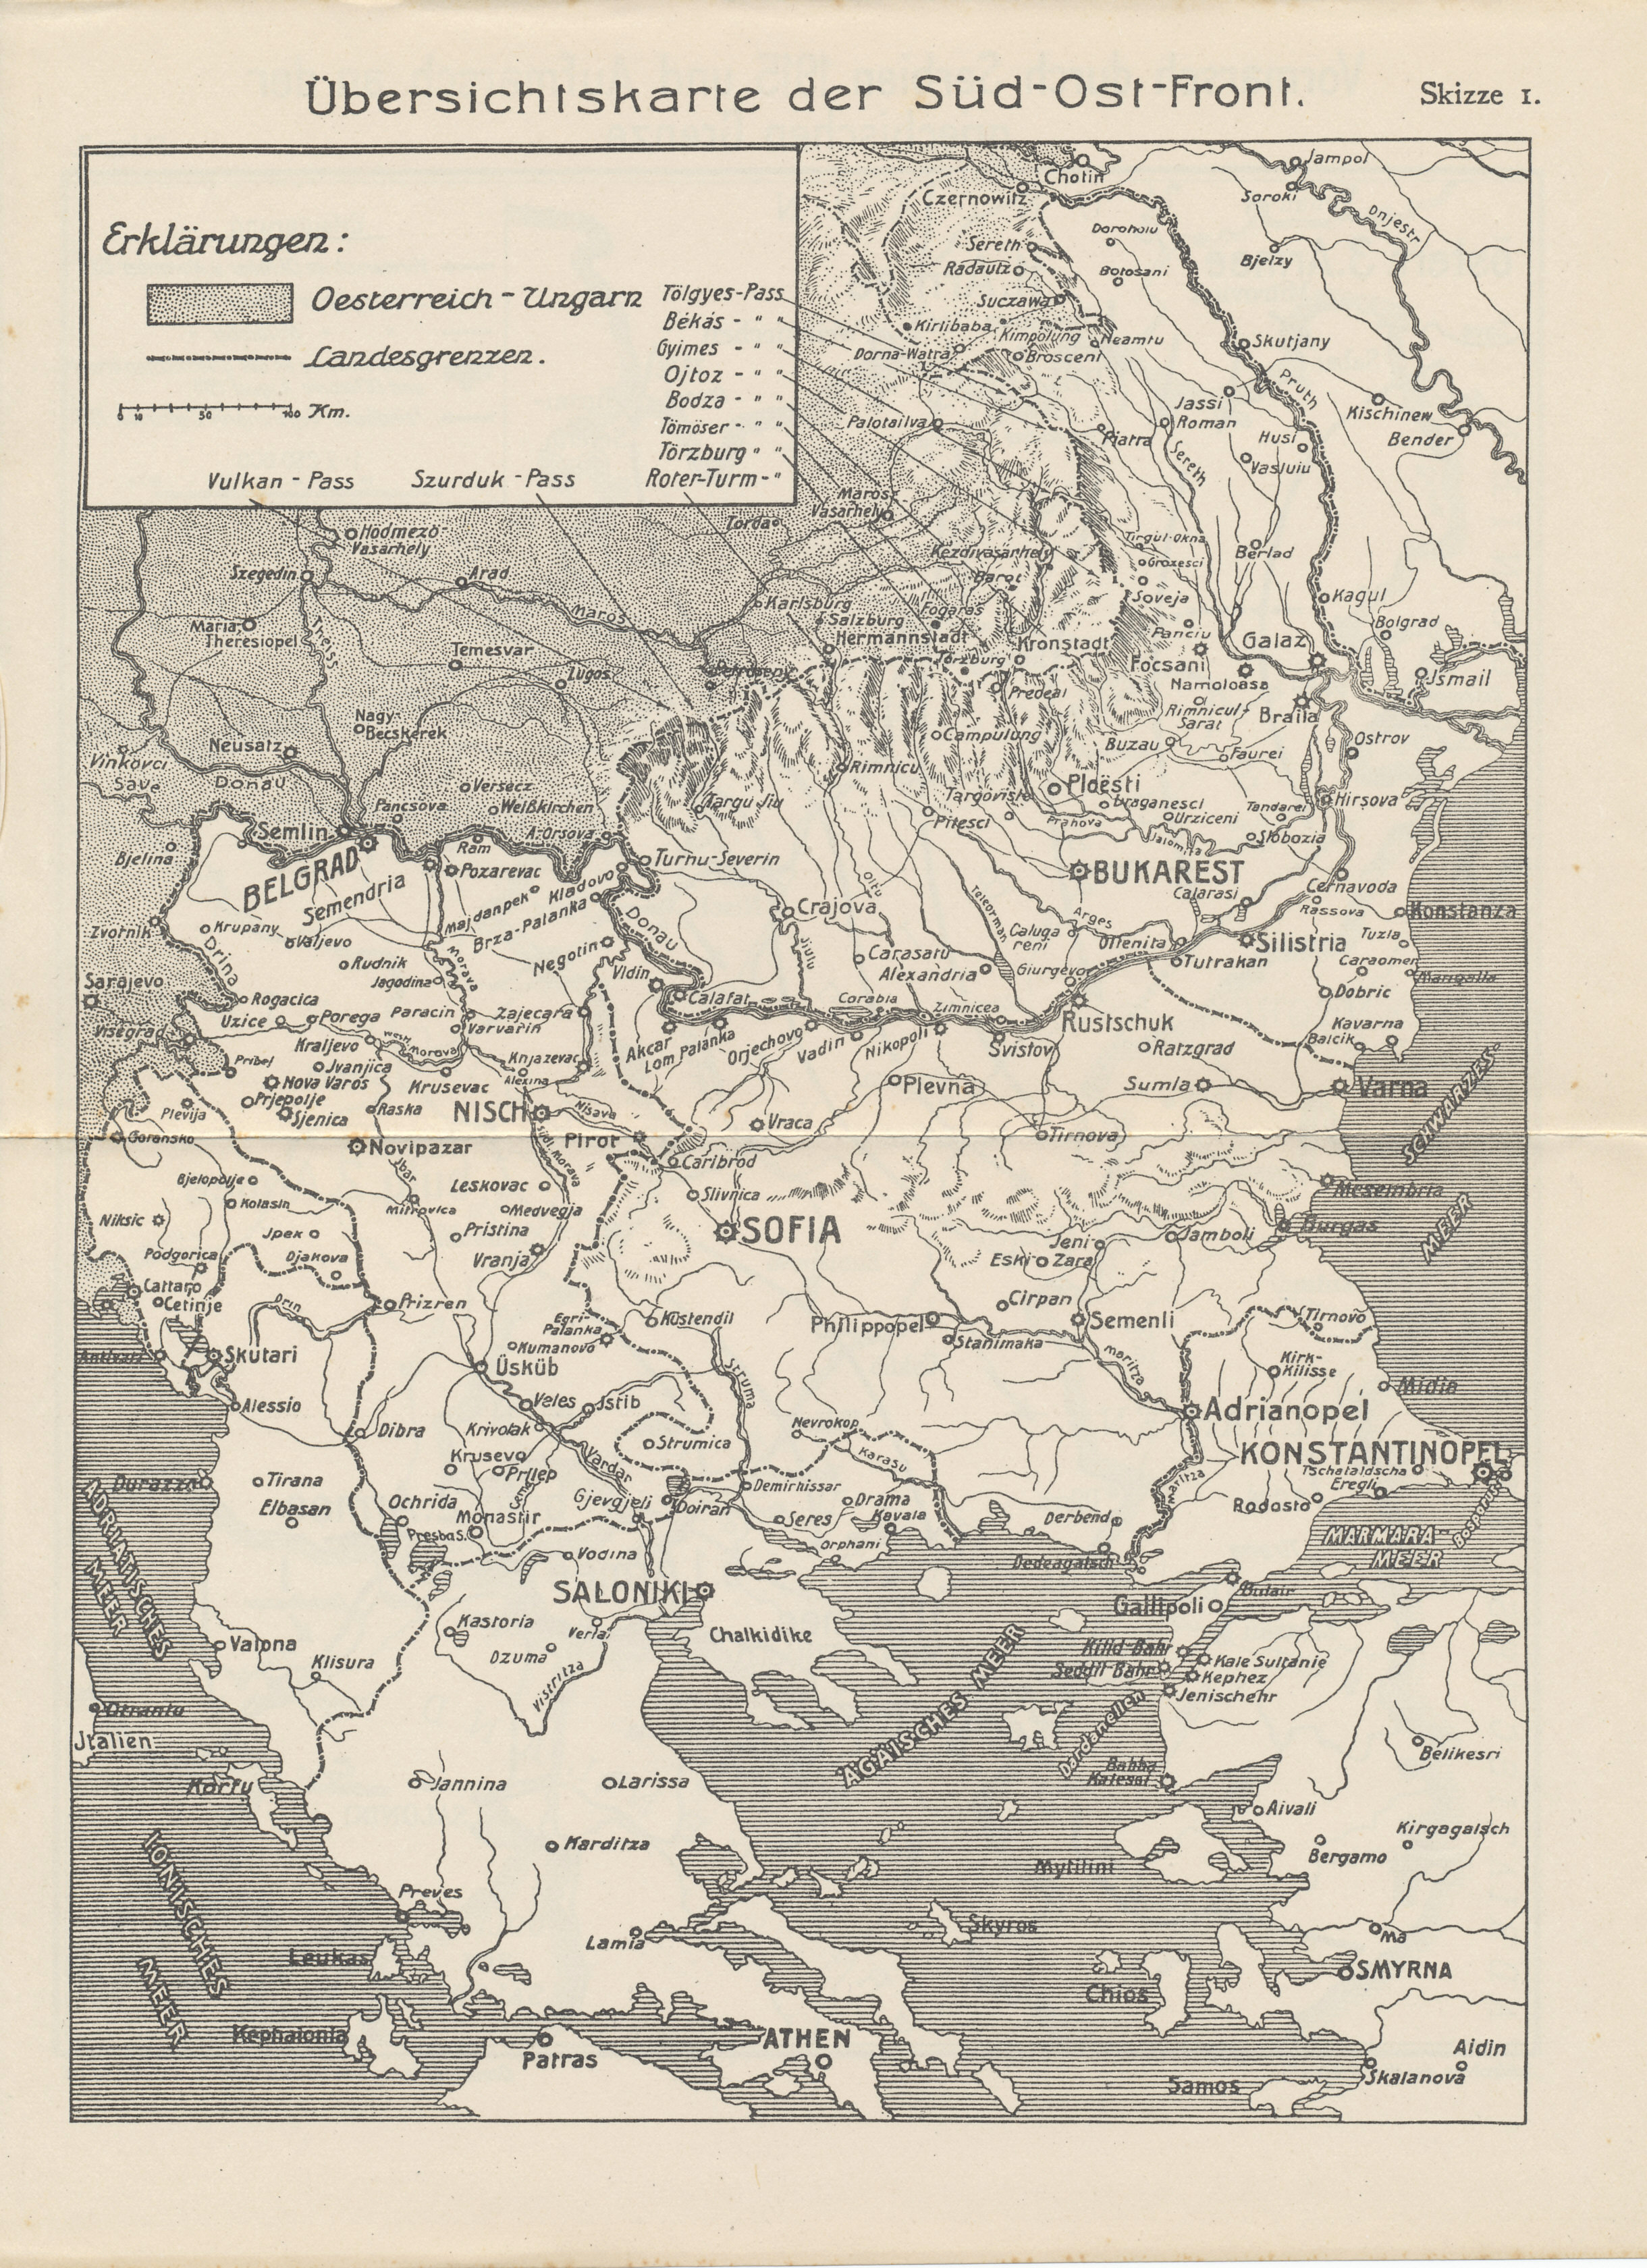 Map of the the Balkan Front — Germany's Southeast Front — with the mountain passes between Austria-Hungary and Romania. From the Reichsarchiv history of the wars in Serbia and Romania, Herbstschlacht in Macedonien; Cernabogen 1916.